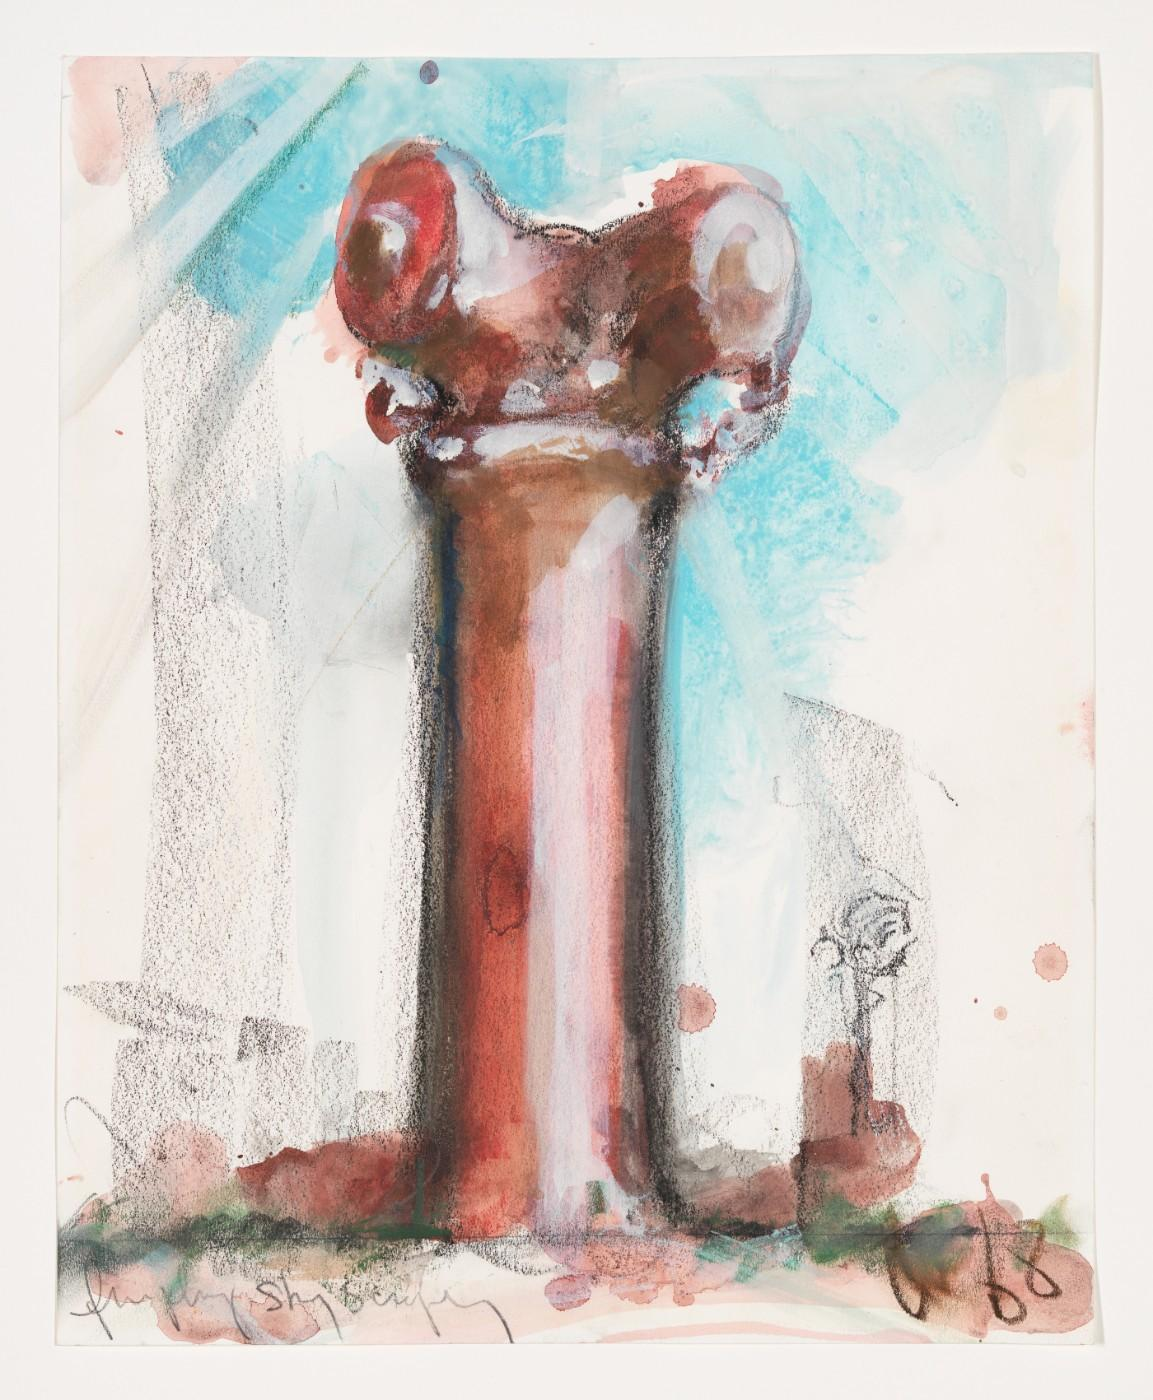 Claes Oldenburg, Proposal for a Skyscraper in the Form of a Chicago Fireplug, 1968